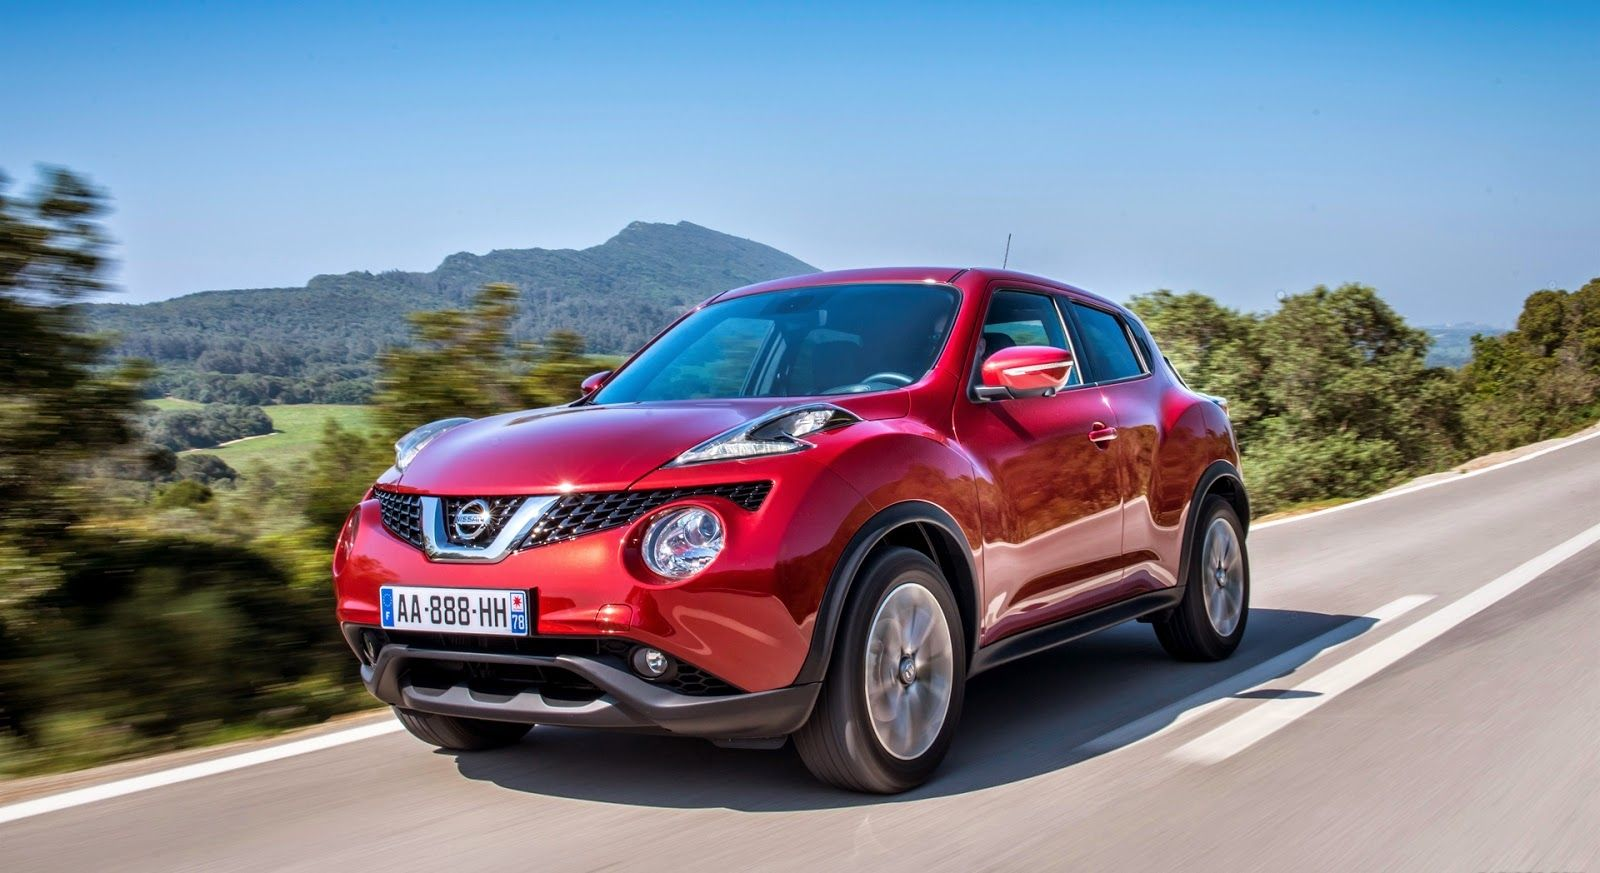 2017 Nissan Juke Nismo Redesign Powertrain and Features New Car